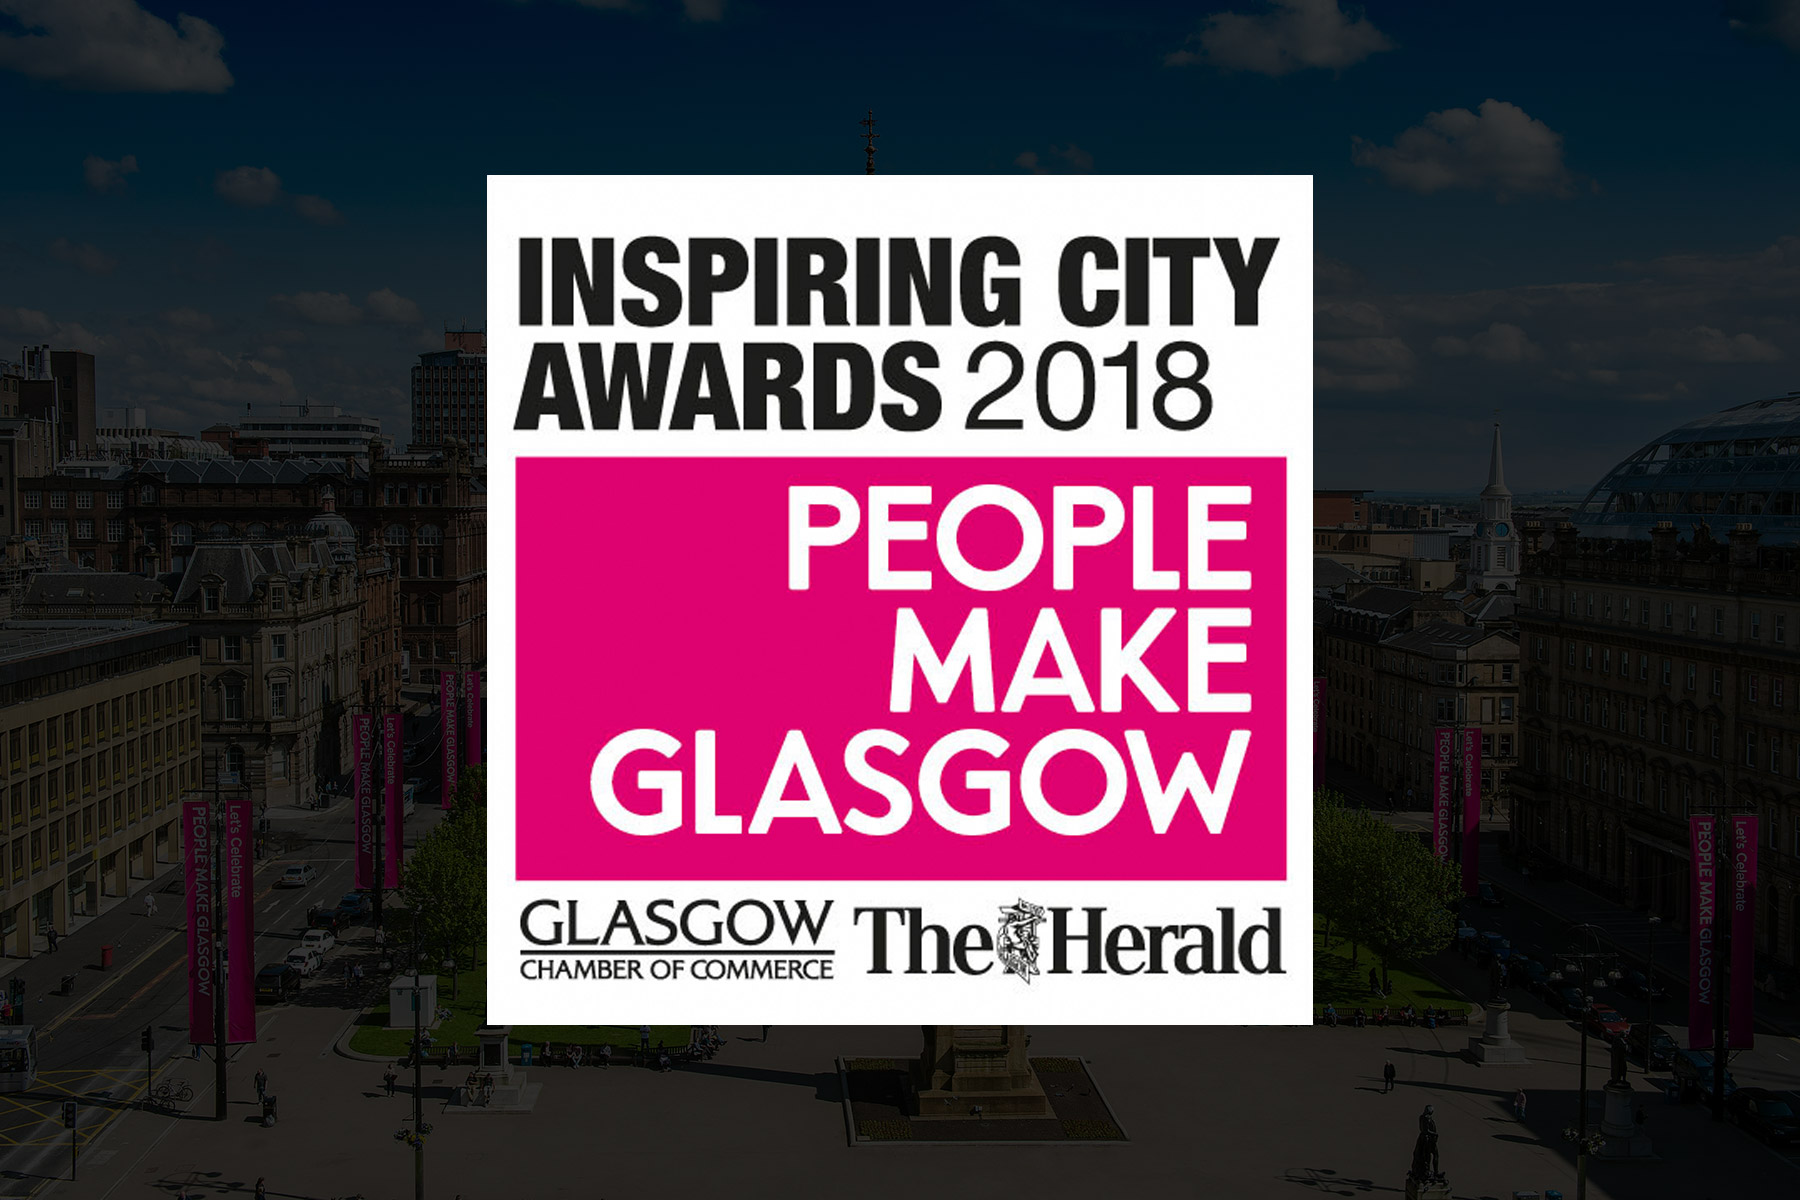 Inspiring City Awards